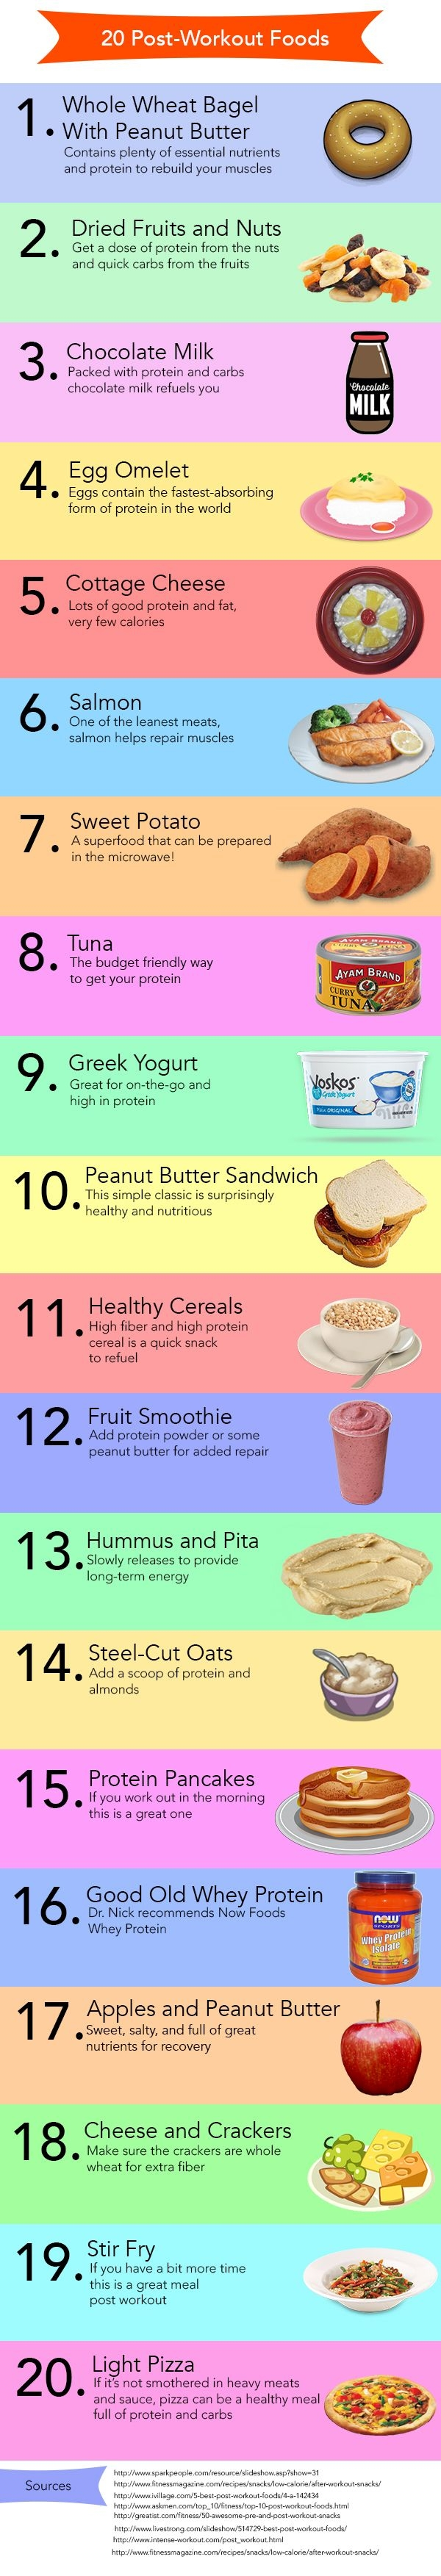 What to Eat After a Workout by kirsten